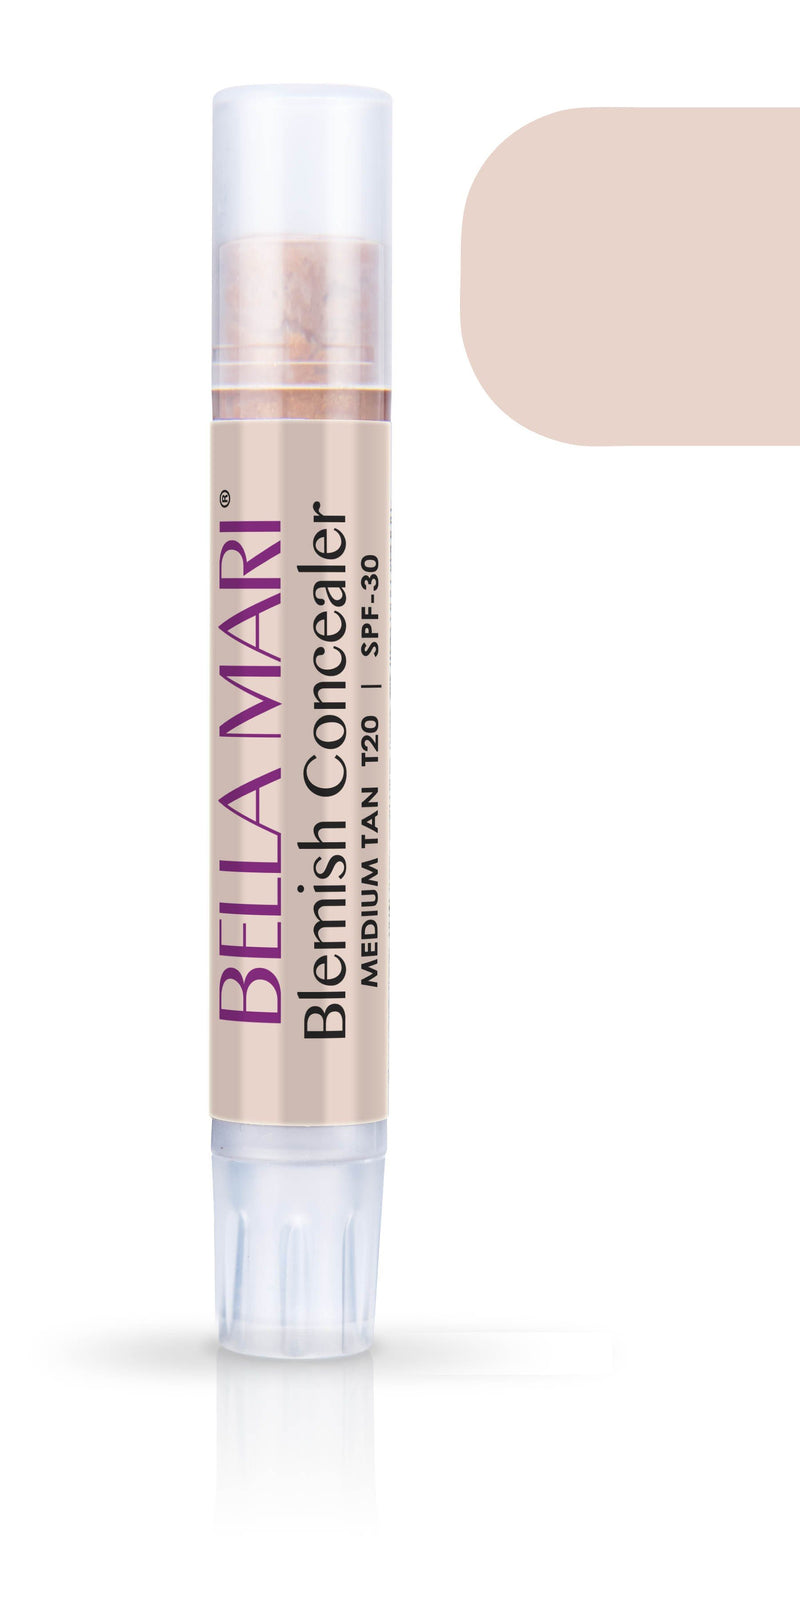 Bella Mari Natural Blemish Concealer Stick; 0.1floz - Bella Mari Natural Blemish Concealer Stick; 0.1floz - Medium Tan